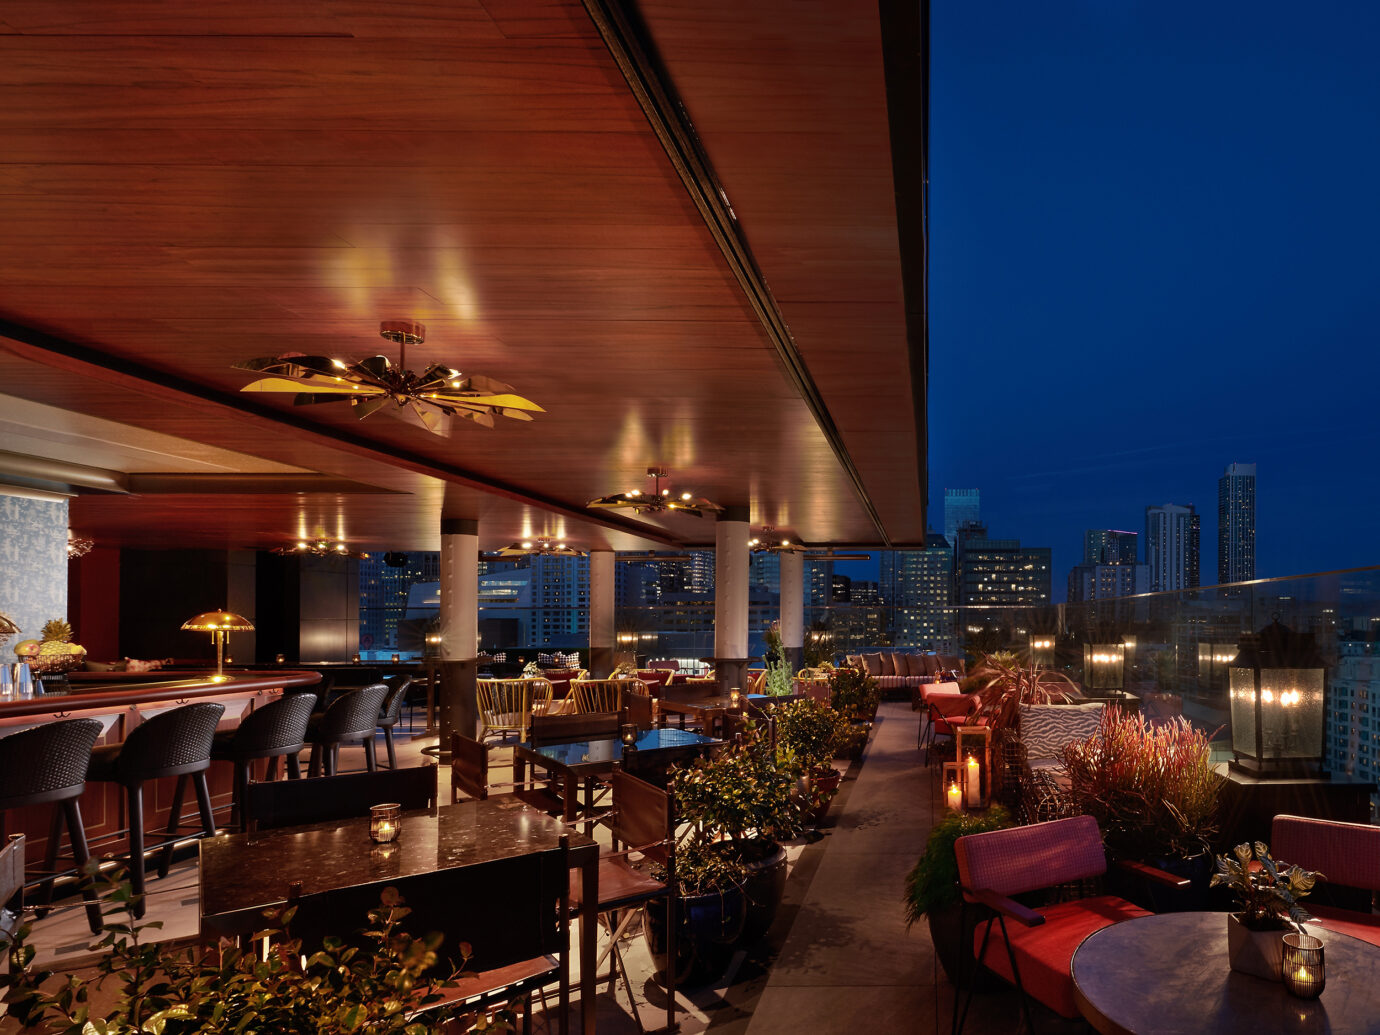 Everdeen rooftop bar at the Virgin Hotel in San Francisco